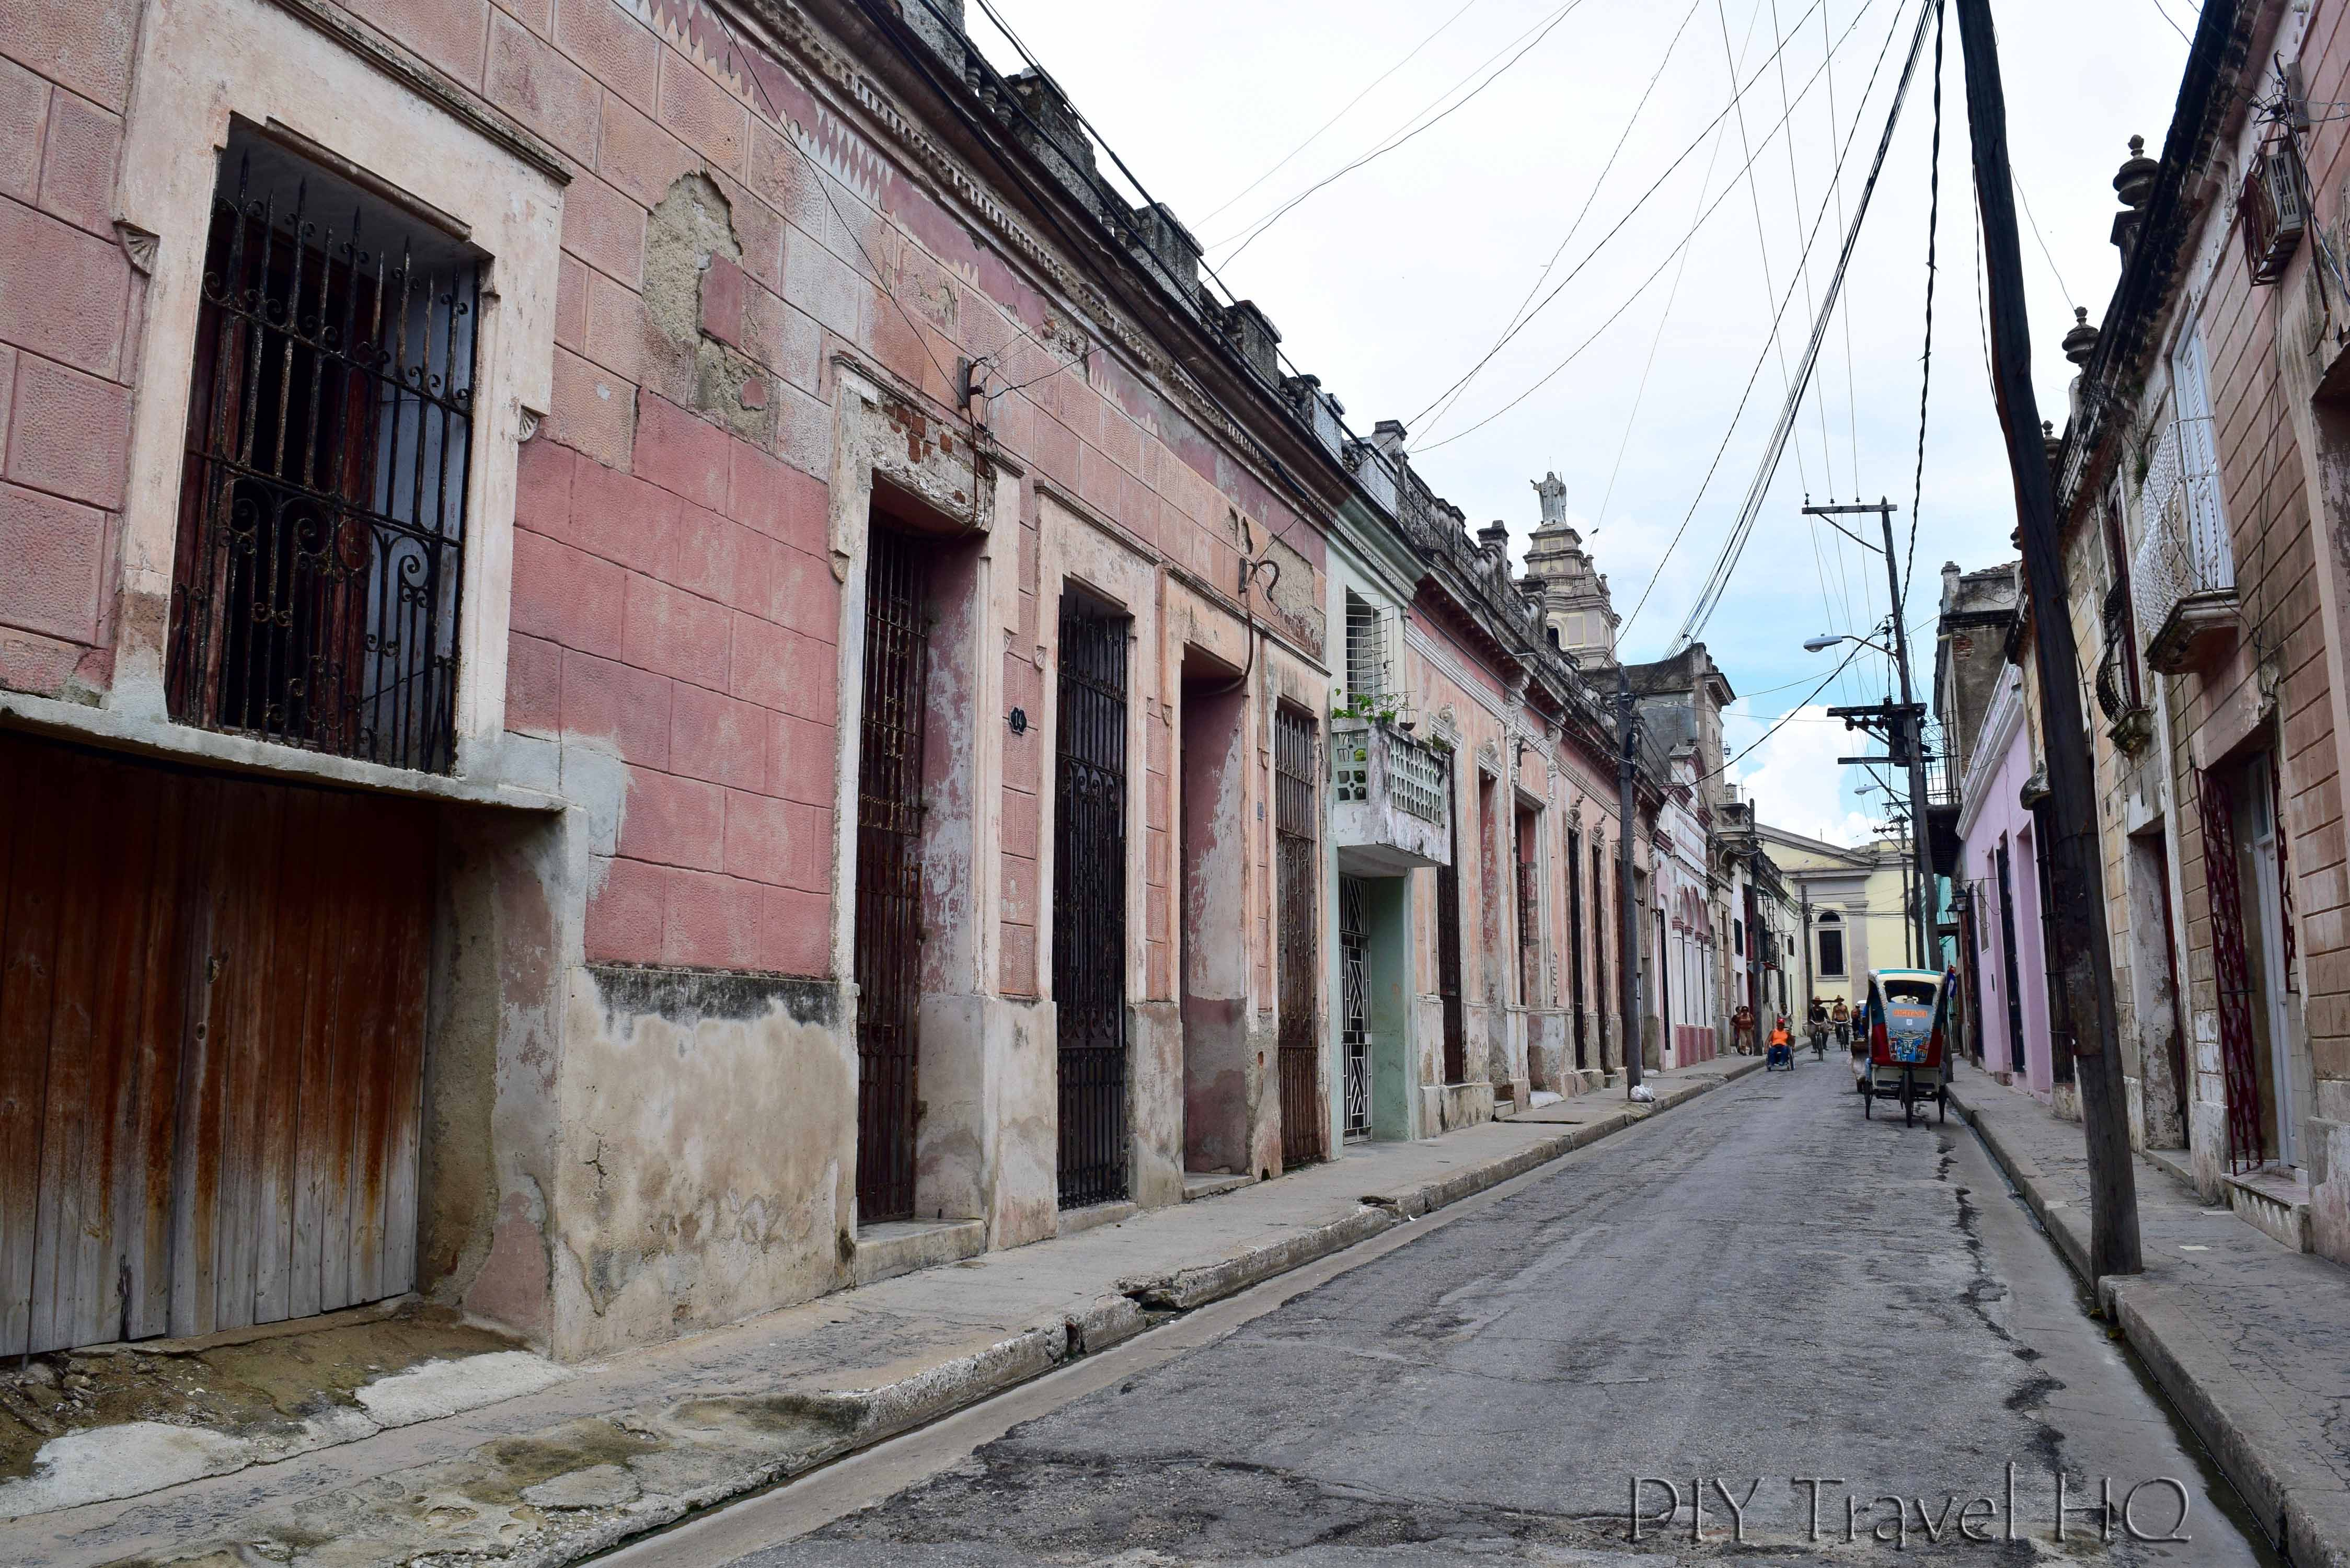 Camaguey: Surprises of the Labyrinth City - DIY Travel HQ